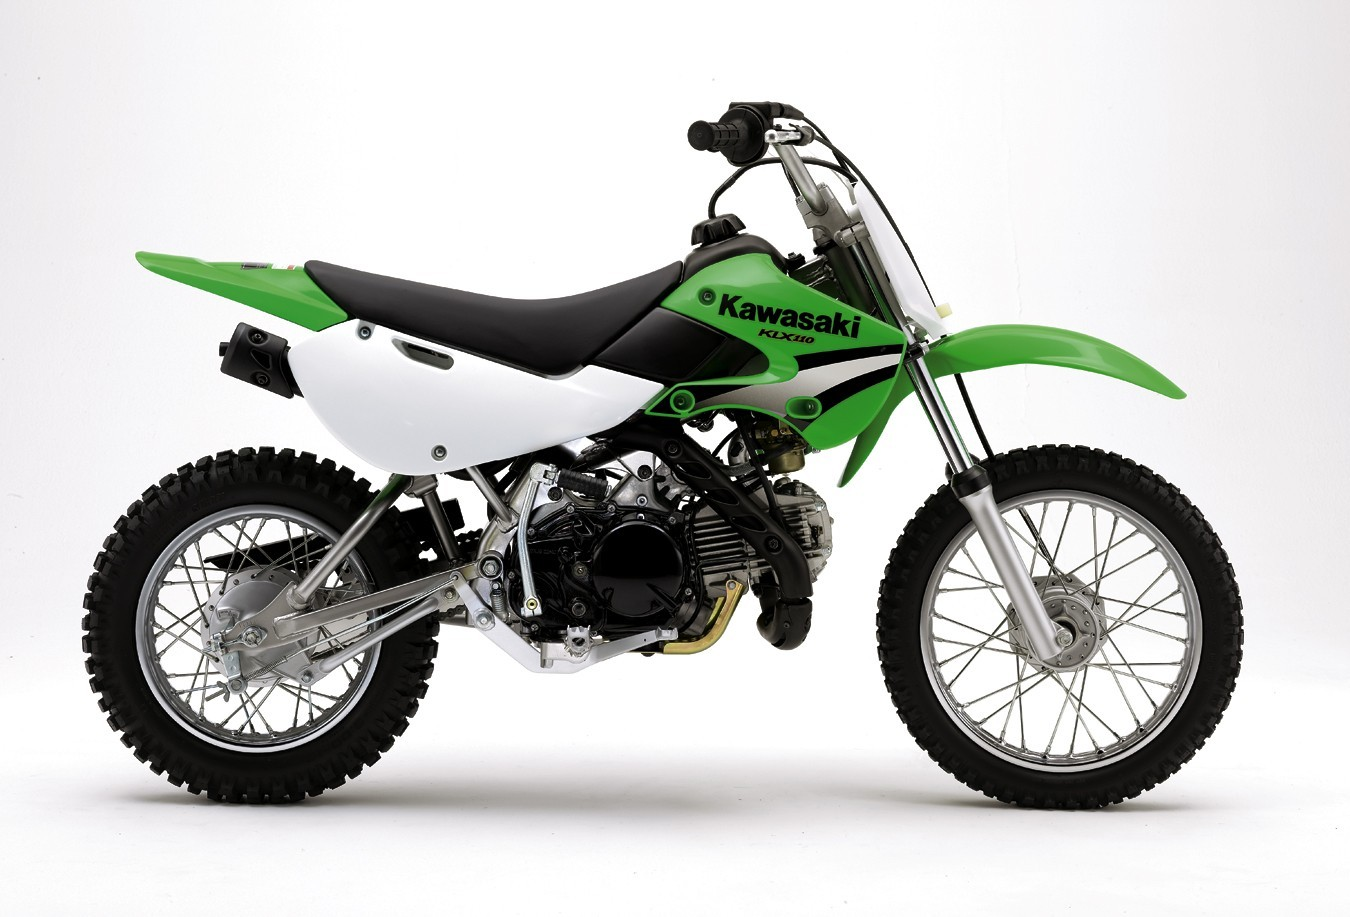 Picture of Recalled Kawasaki model KLX110-A4